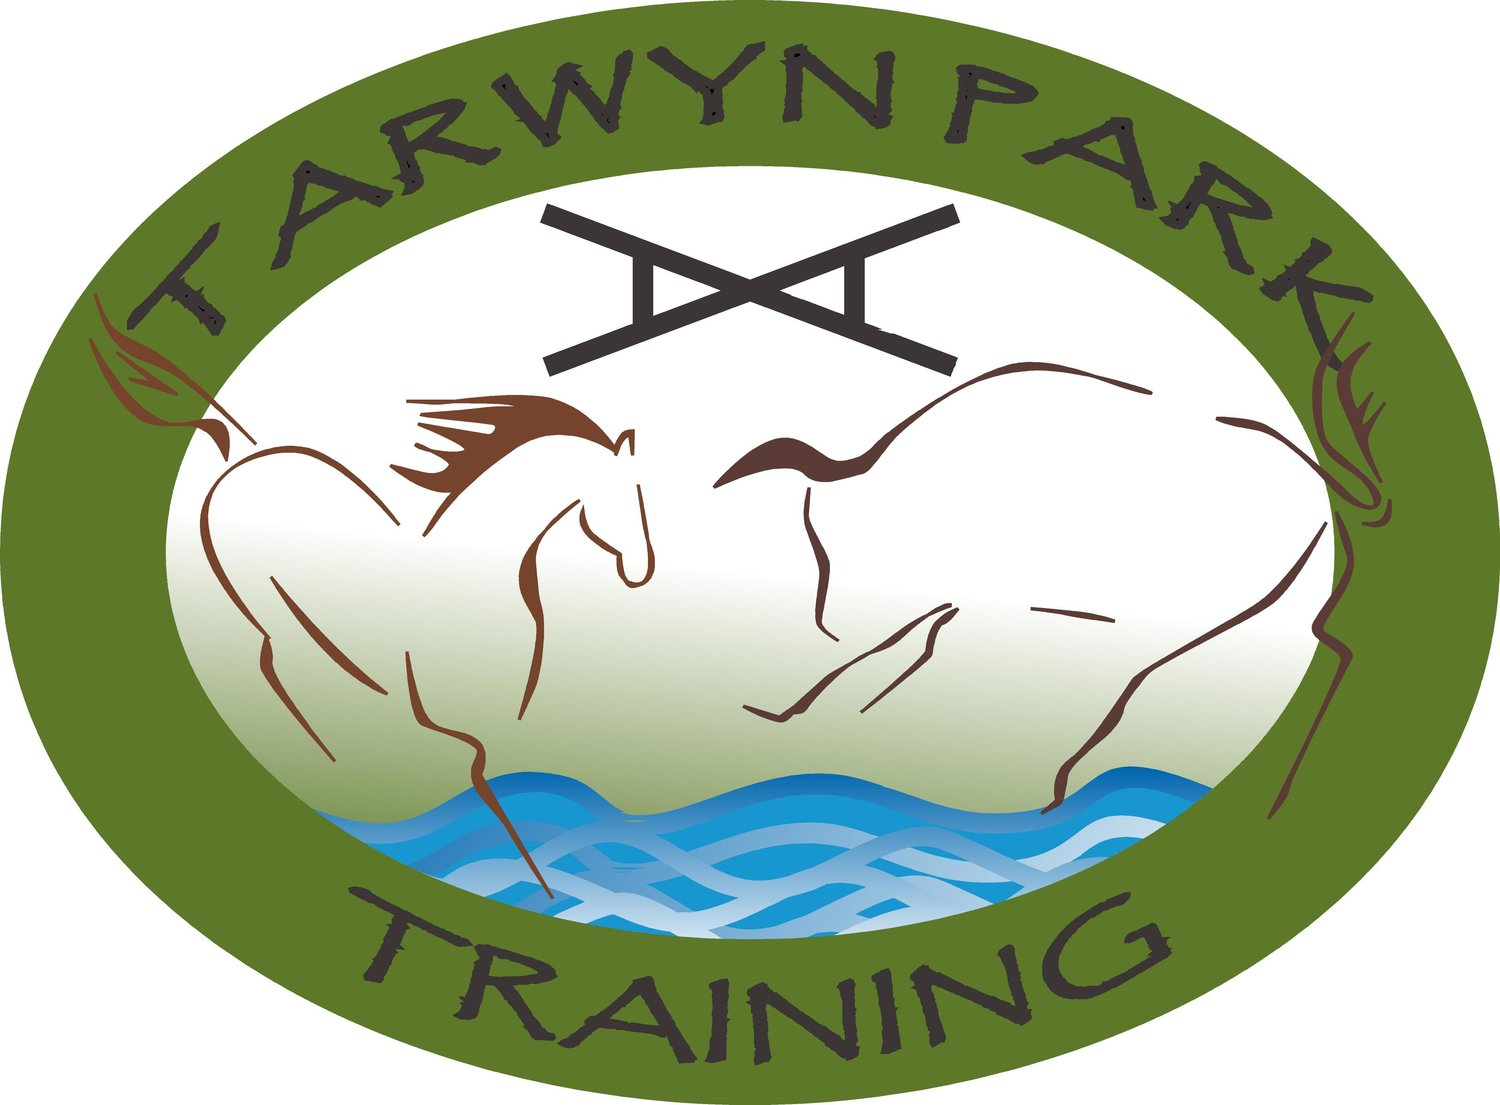 Tarwyn Park Training